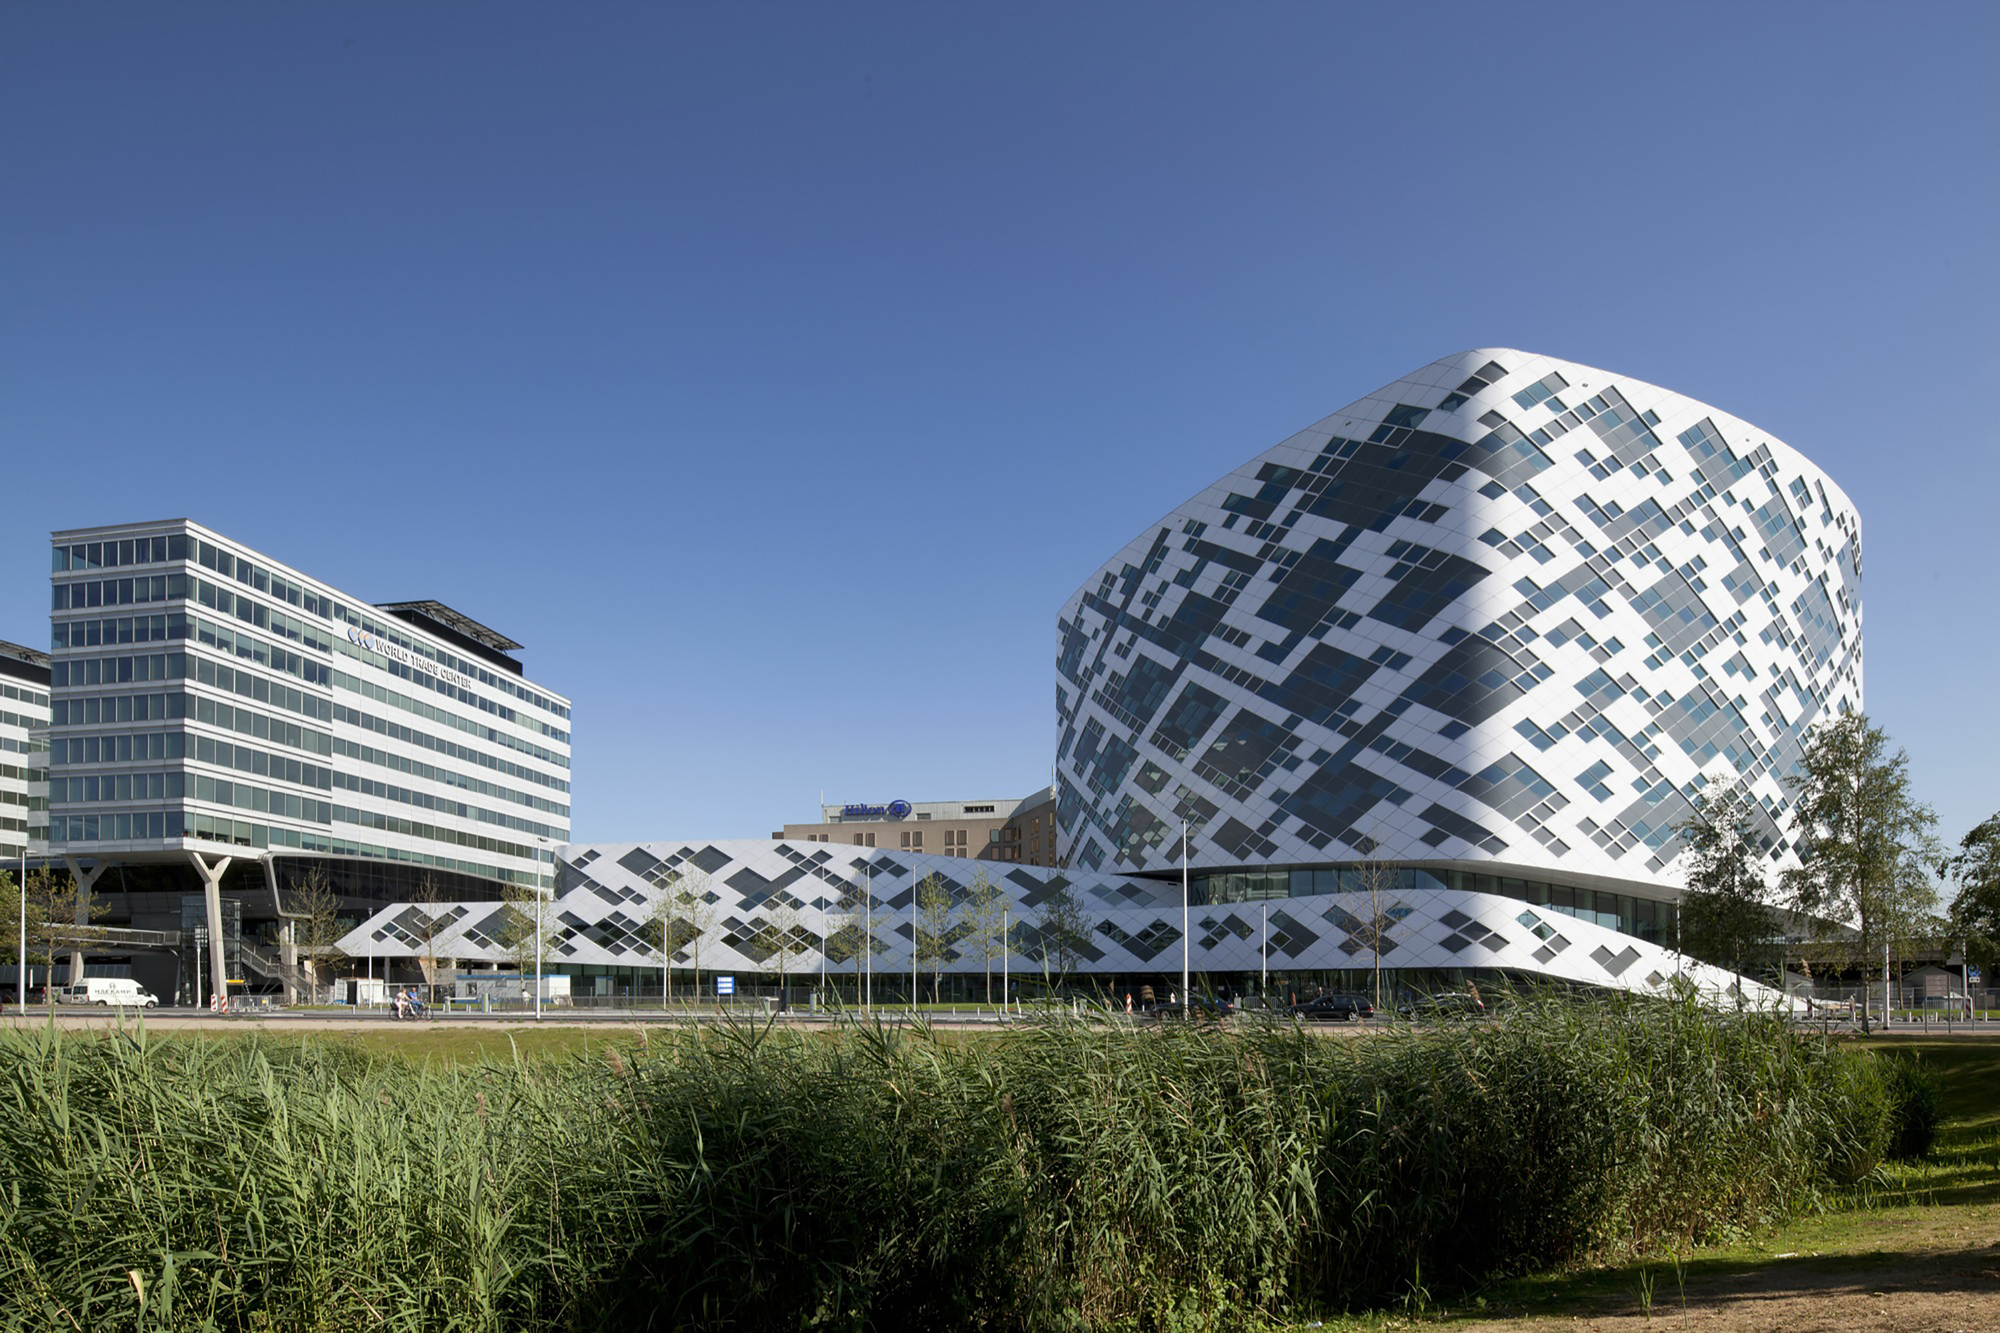 Hilton amsterdam airport schiphol mecanoo archdaily for Best hotel building design